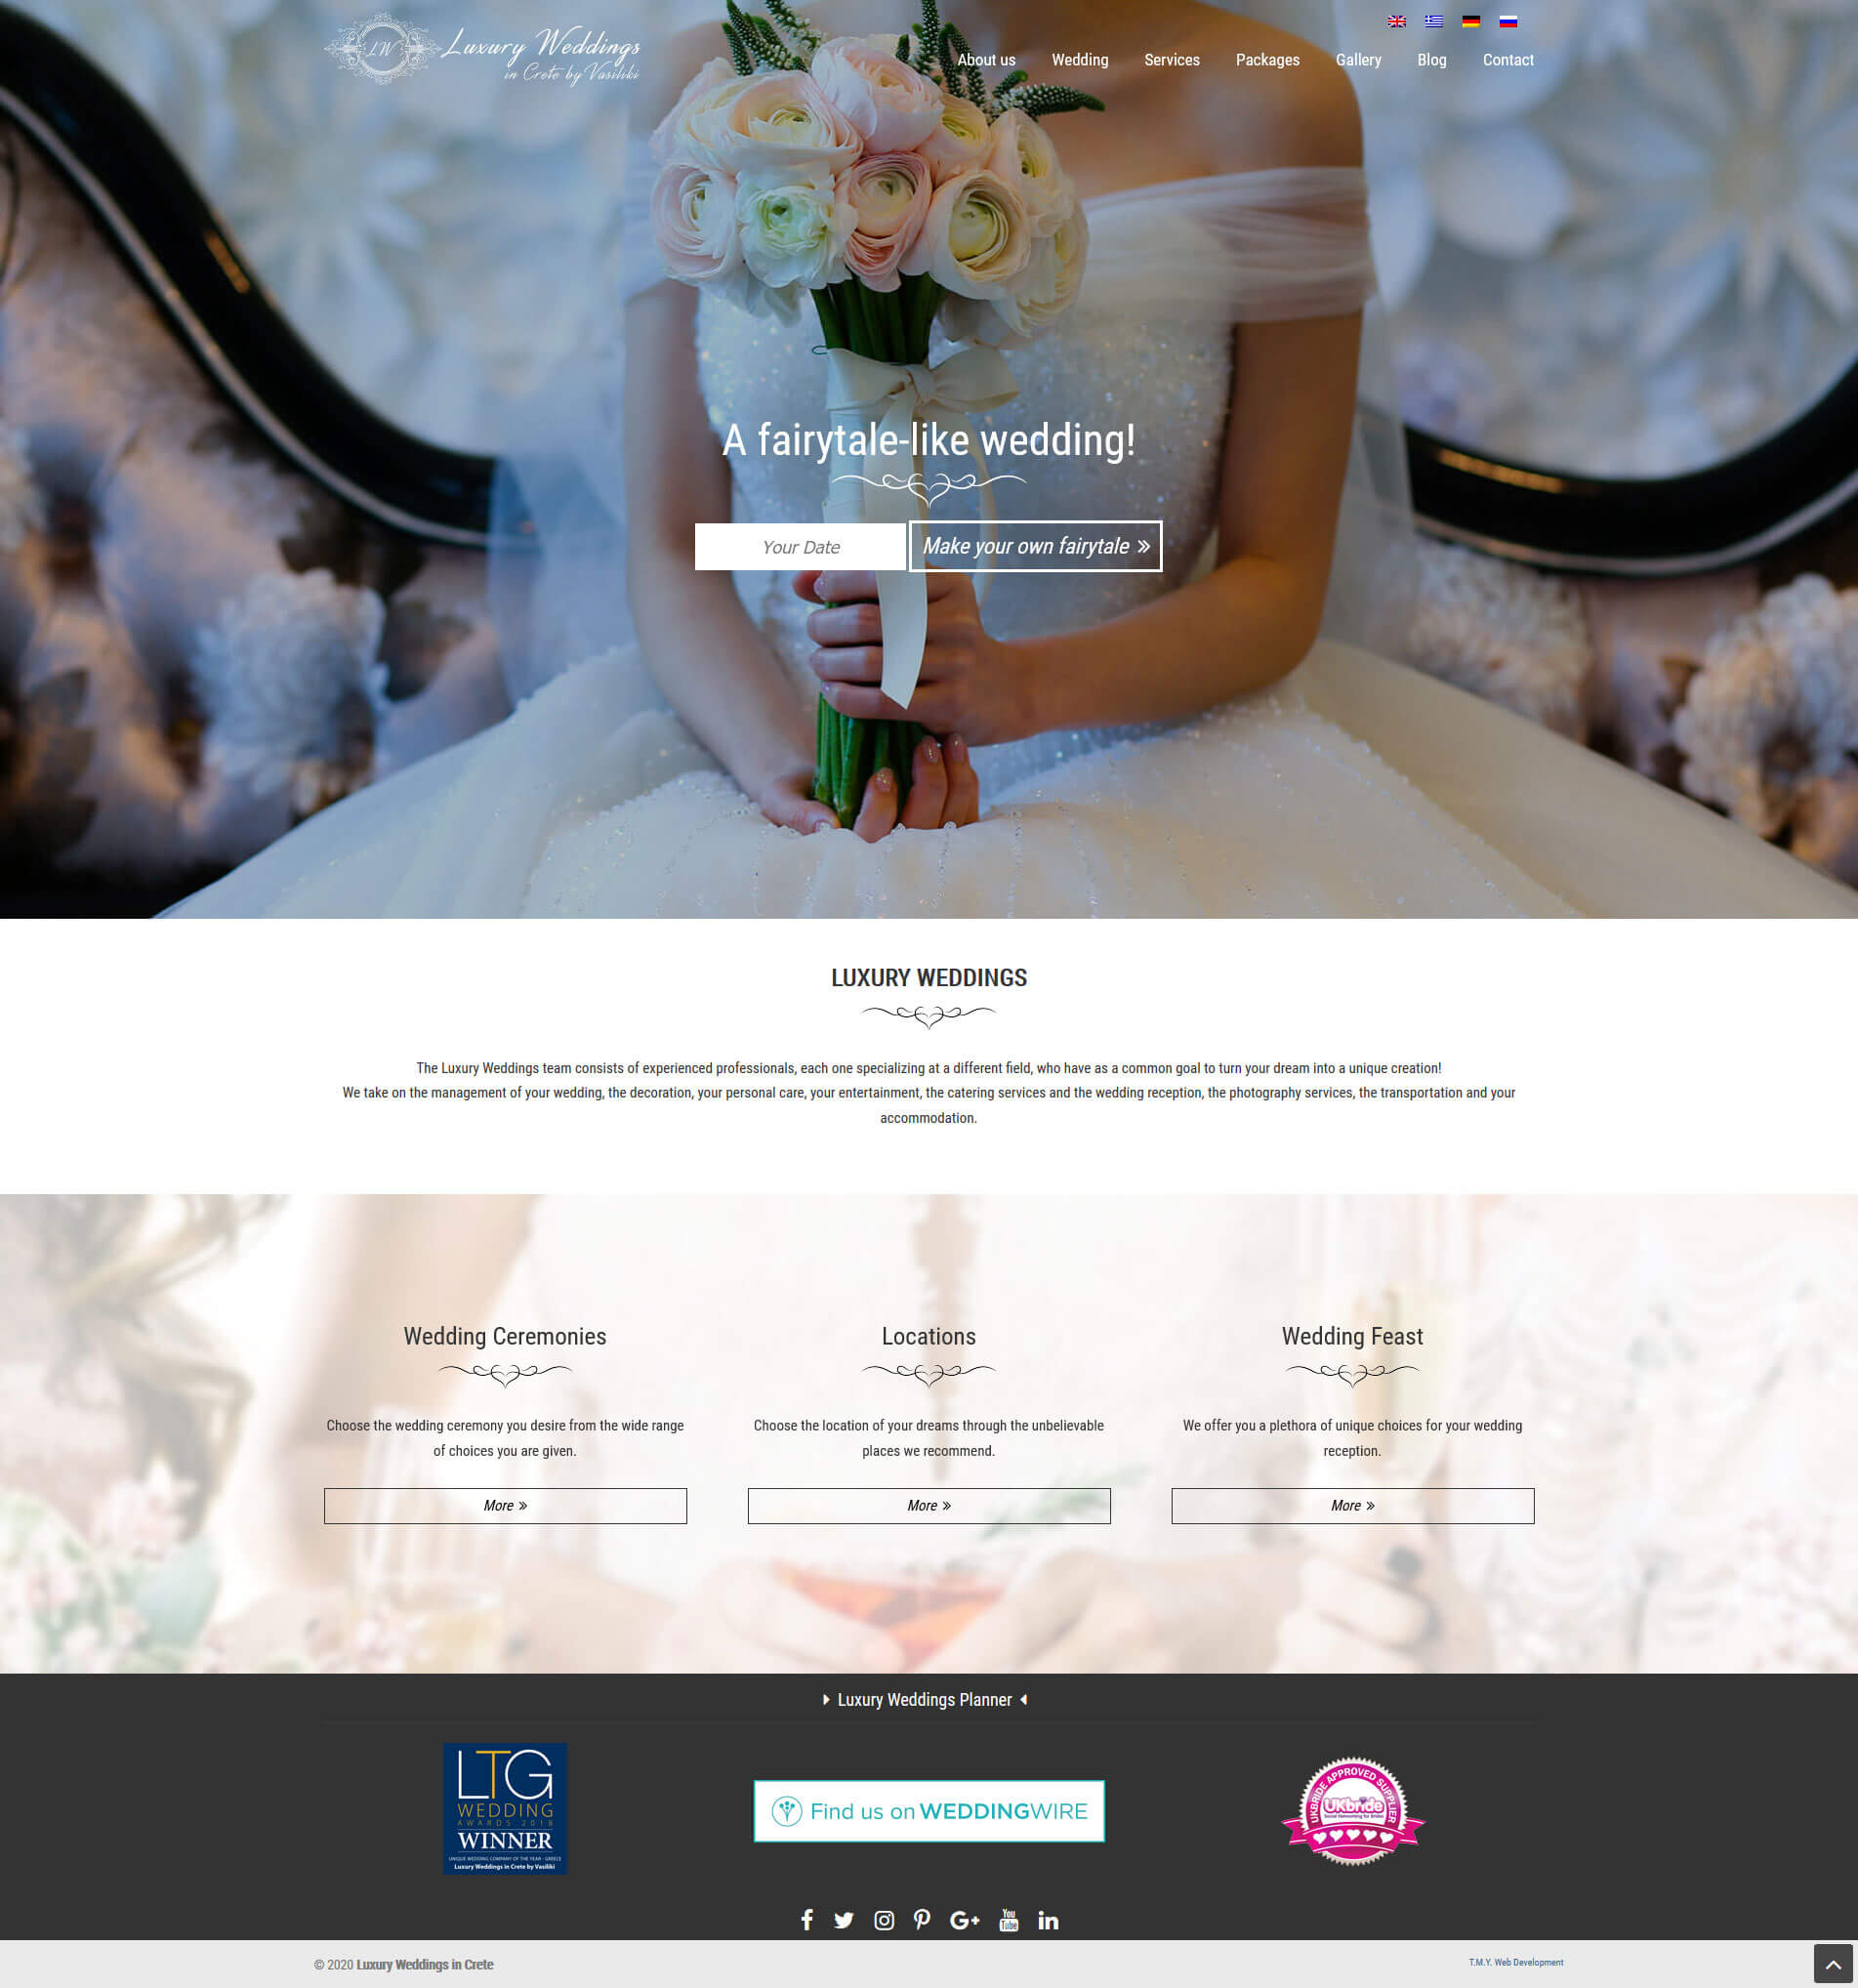 Luxury Weddings - TMY WEB Development